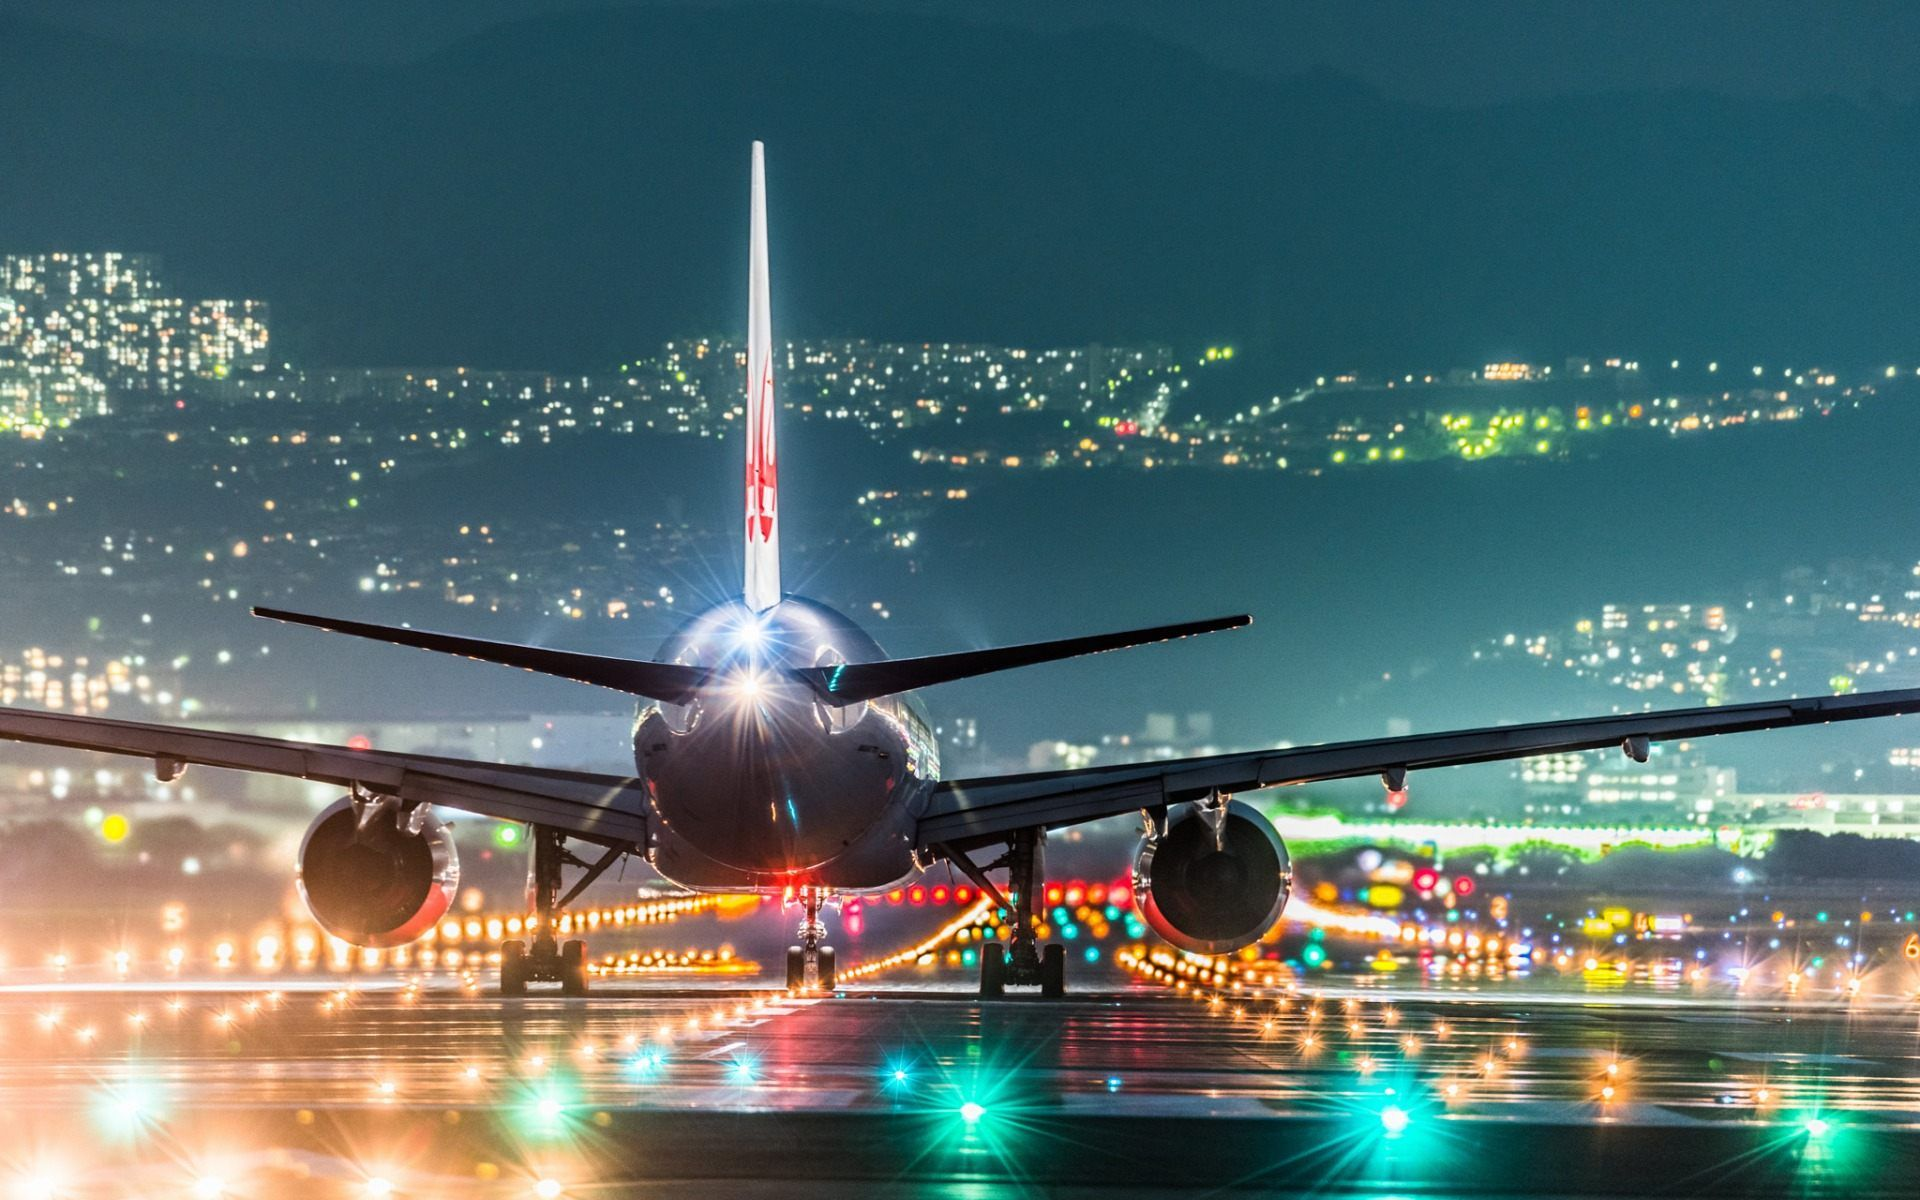 airport background images